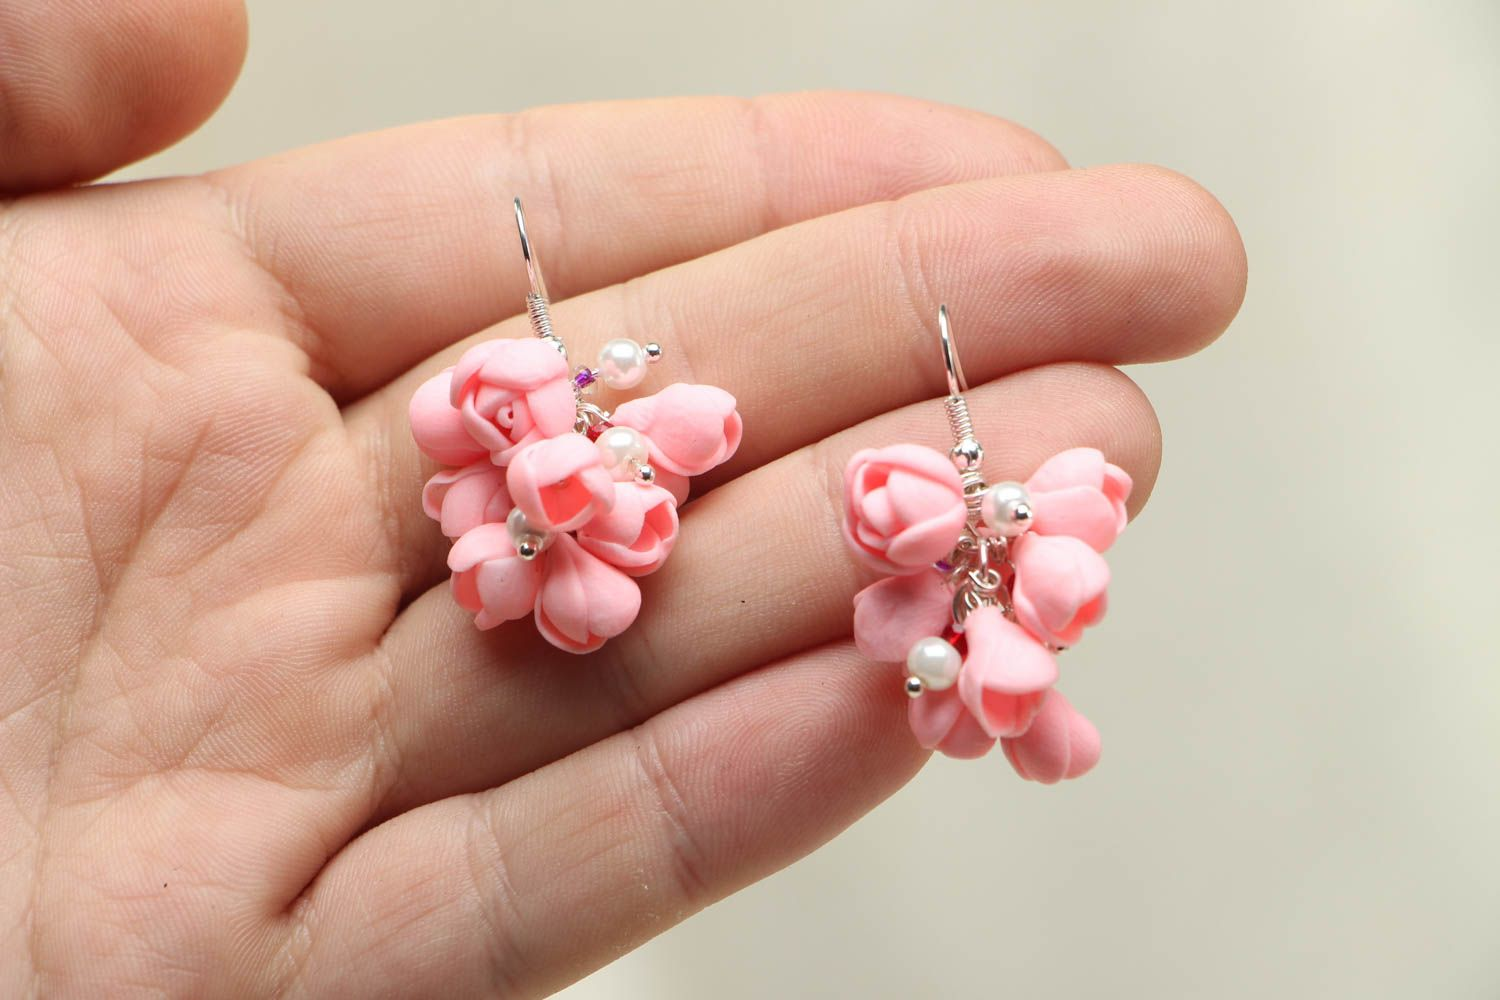 Pink plastic earrings photo 3